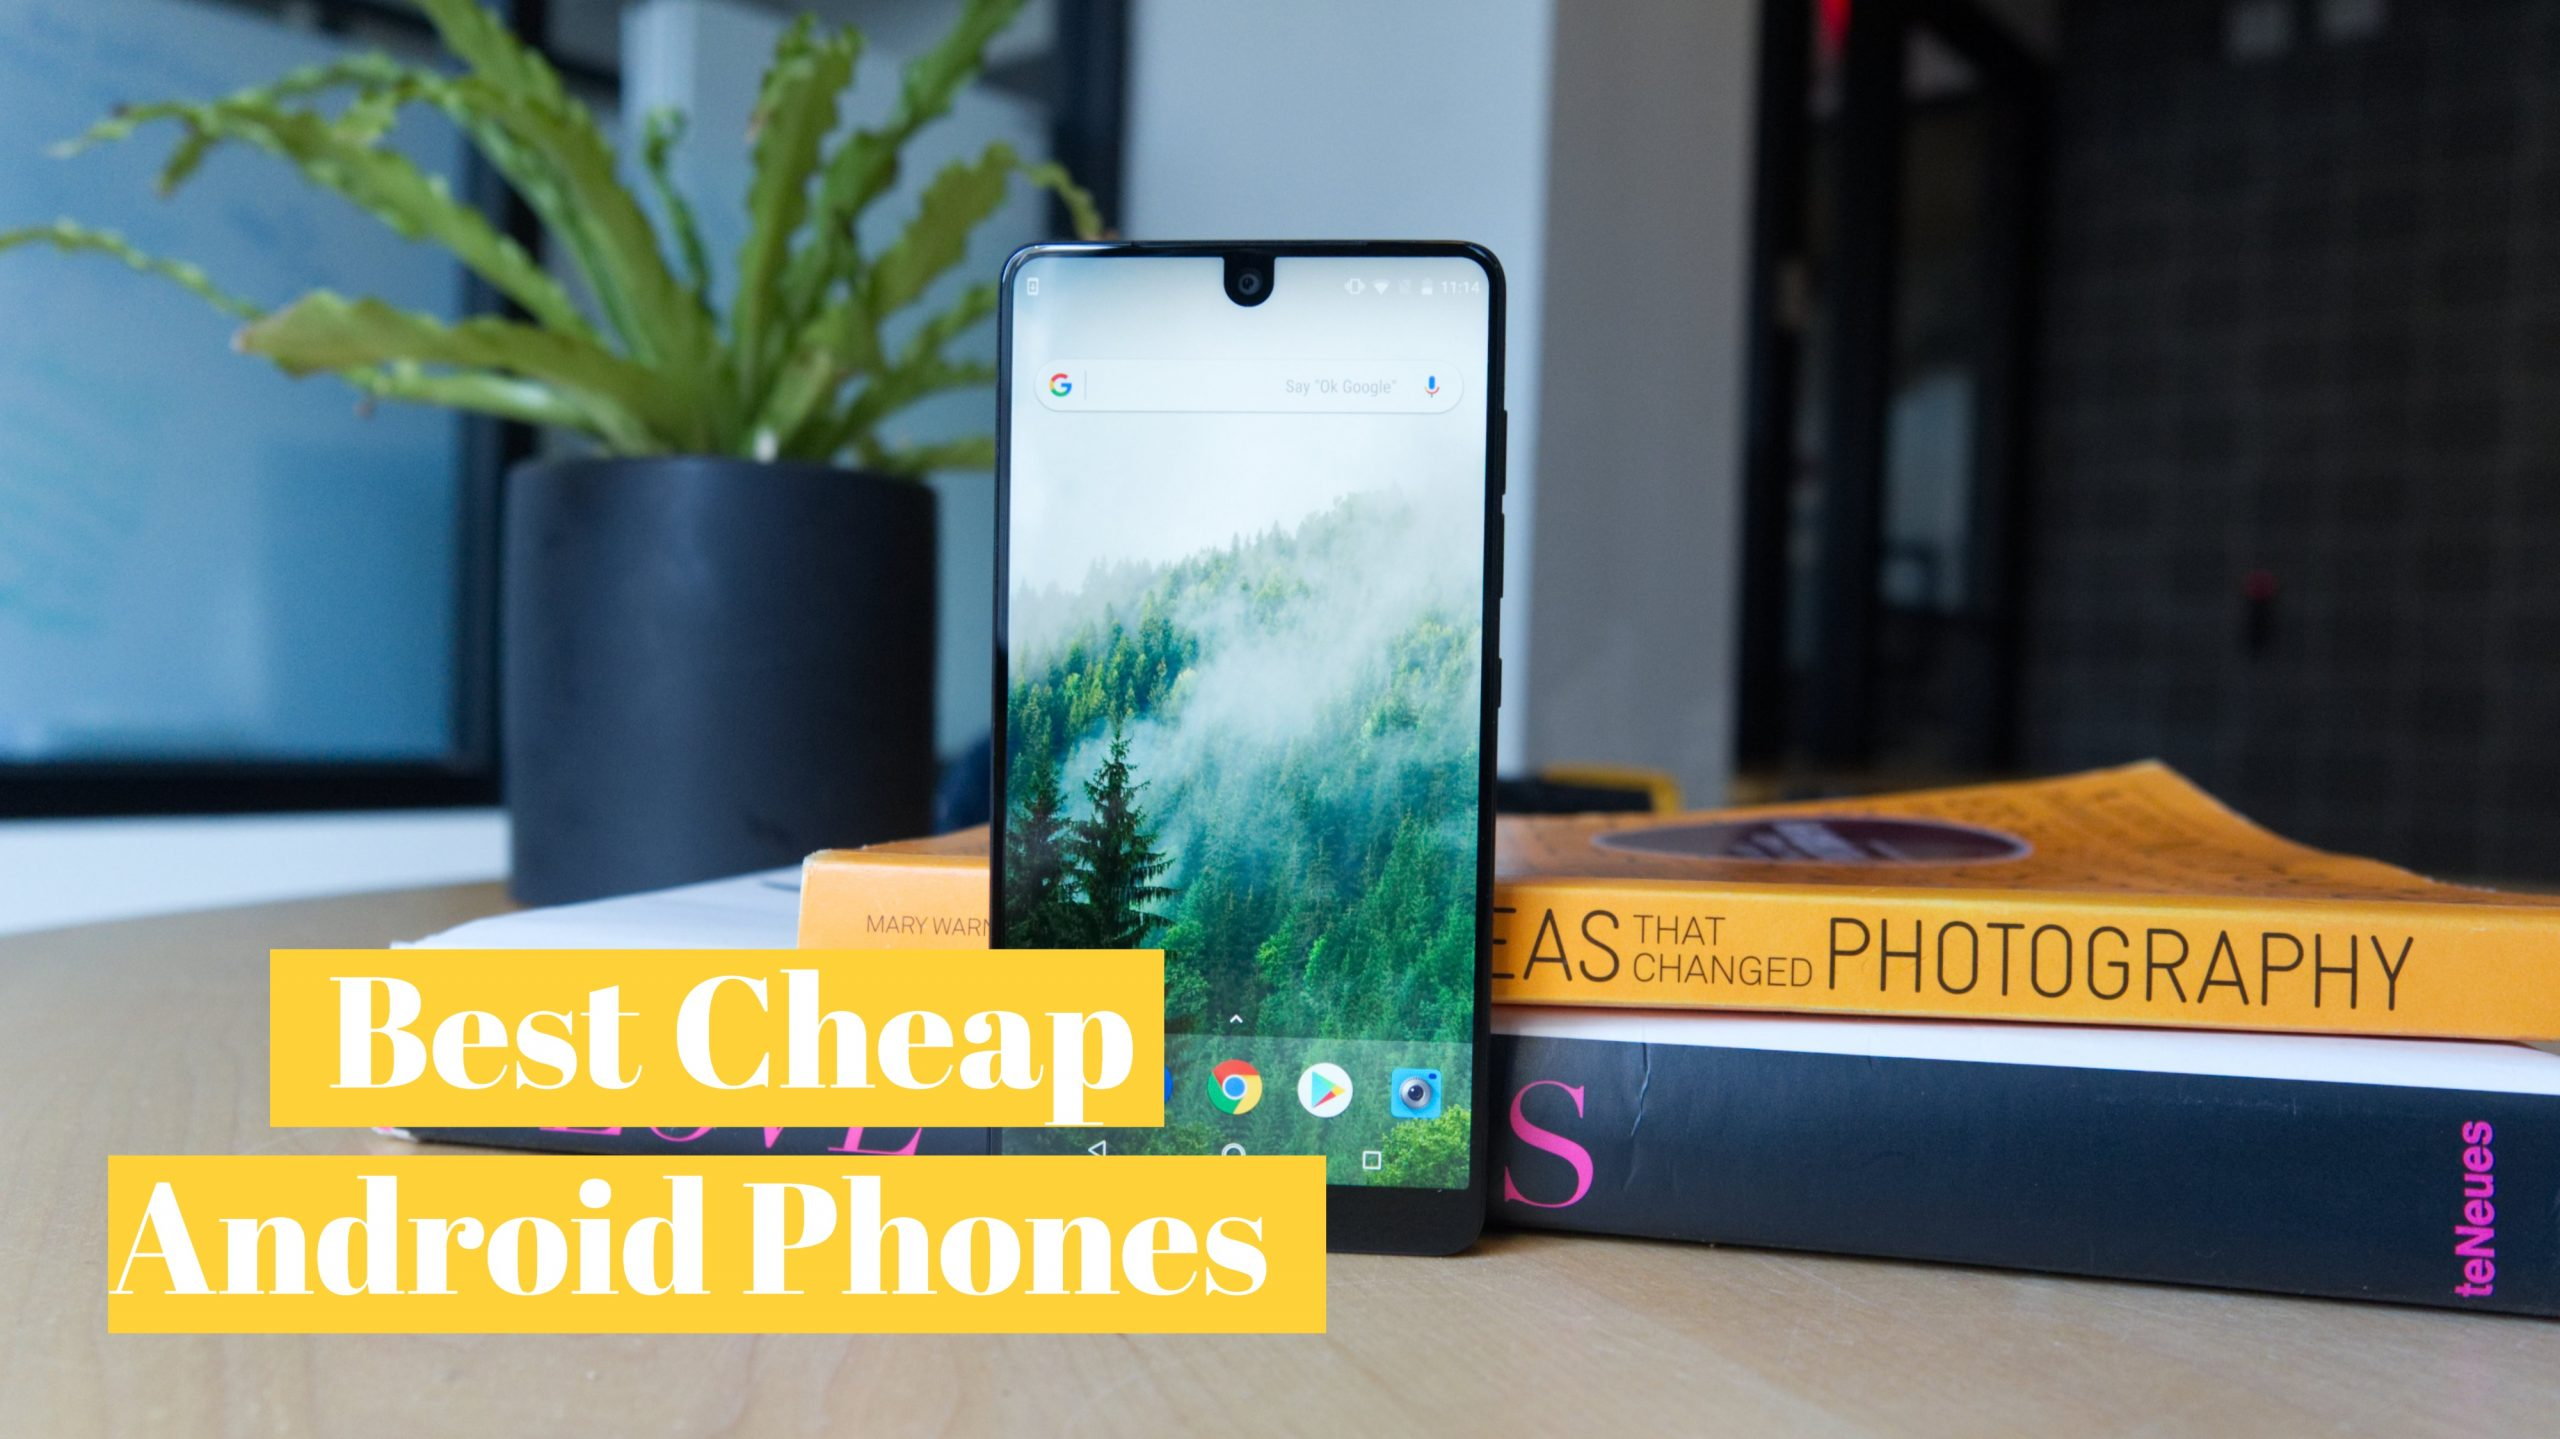 what are the best cheap android phones